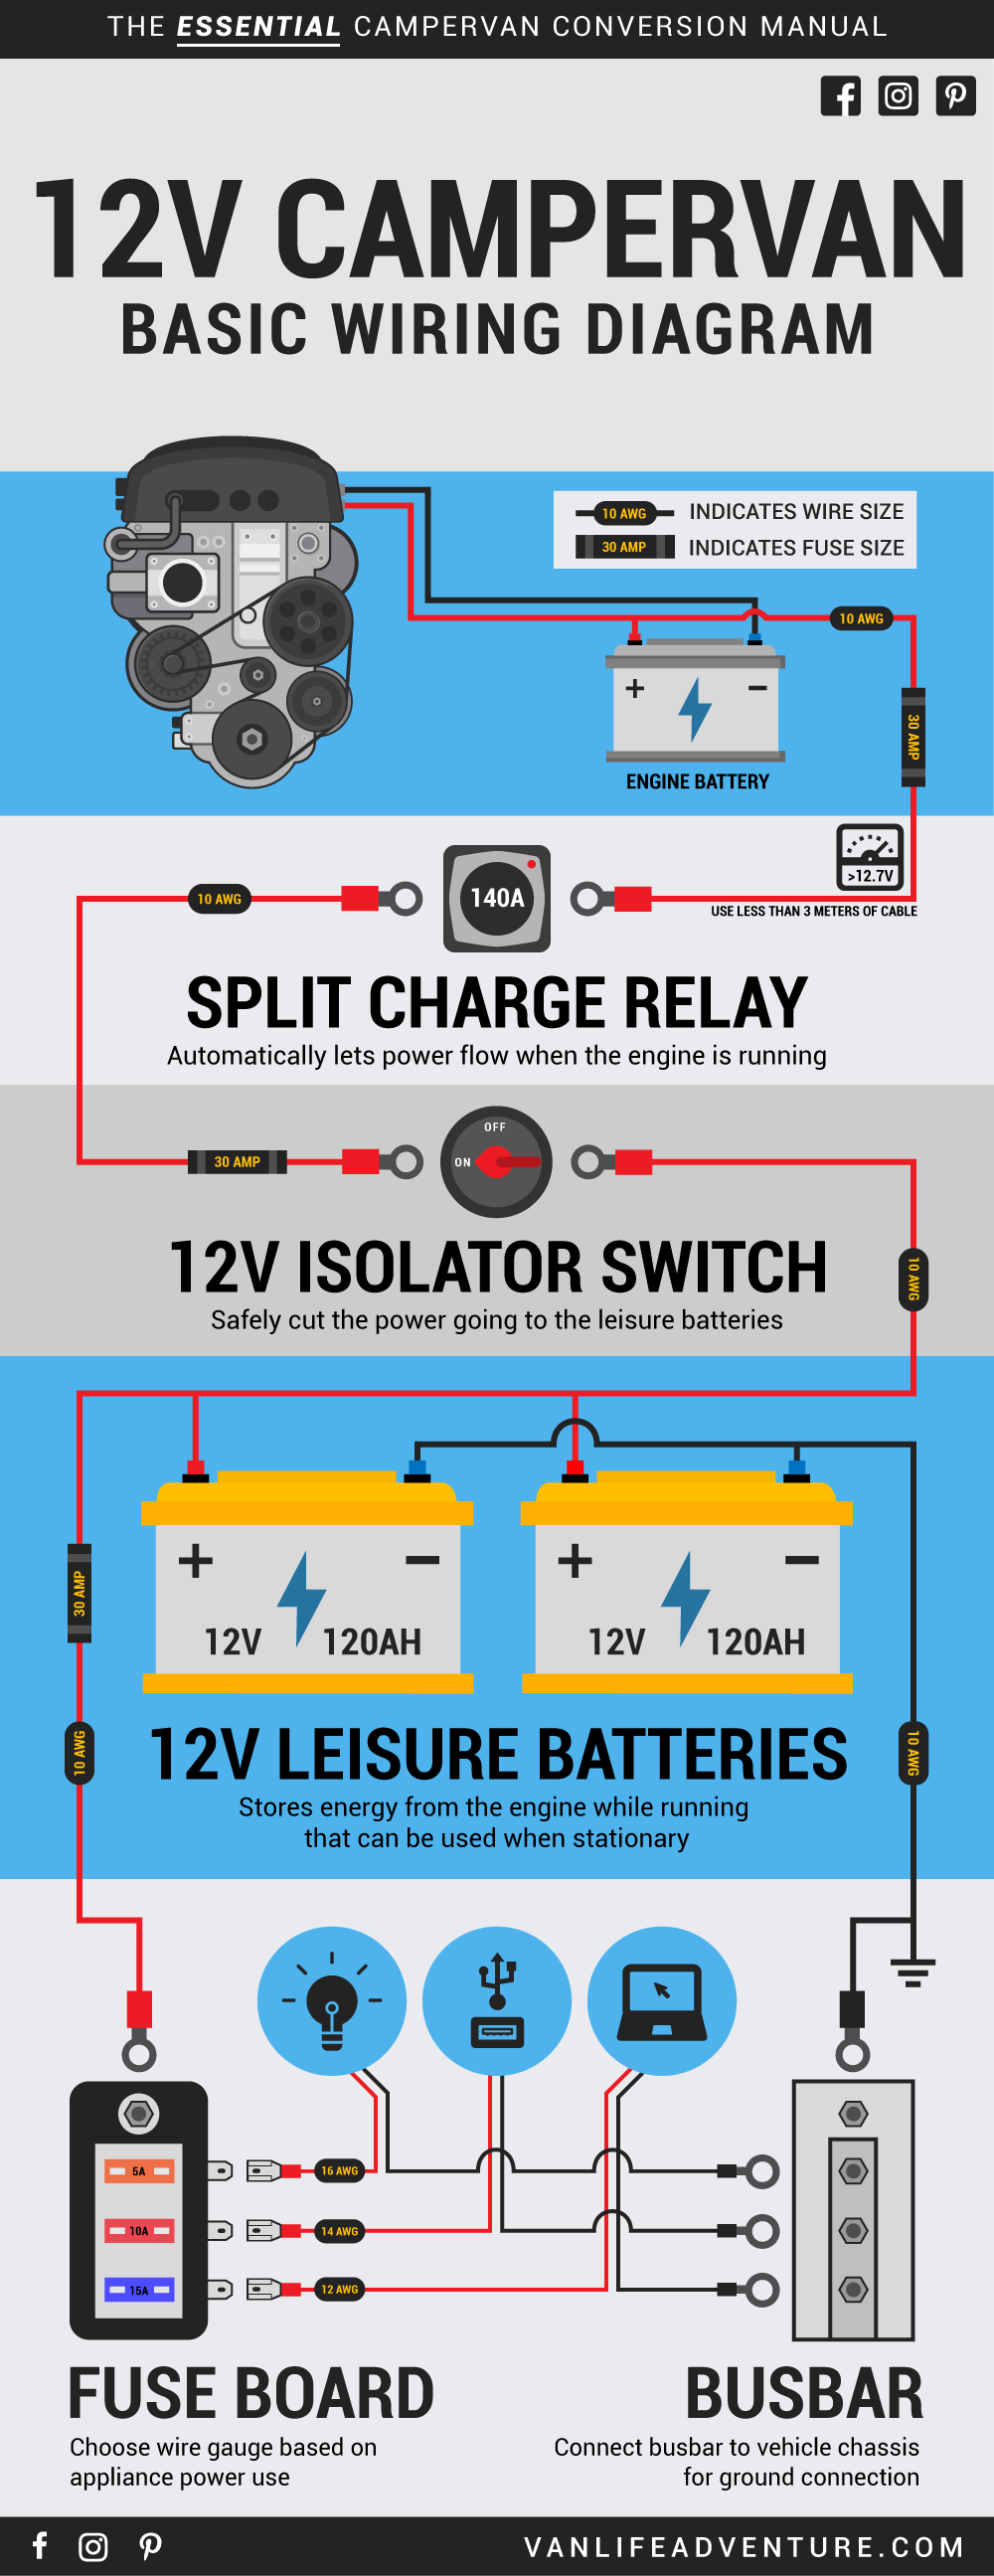 save this pin stepping into the world of campervan electrics can be a bit [ 1000 x 2591 Pixel ]